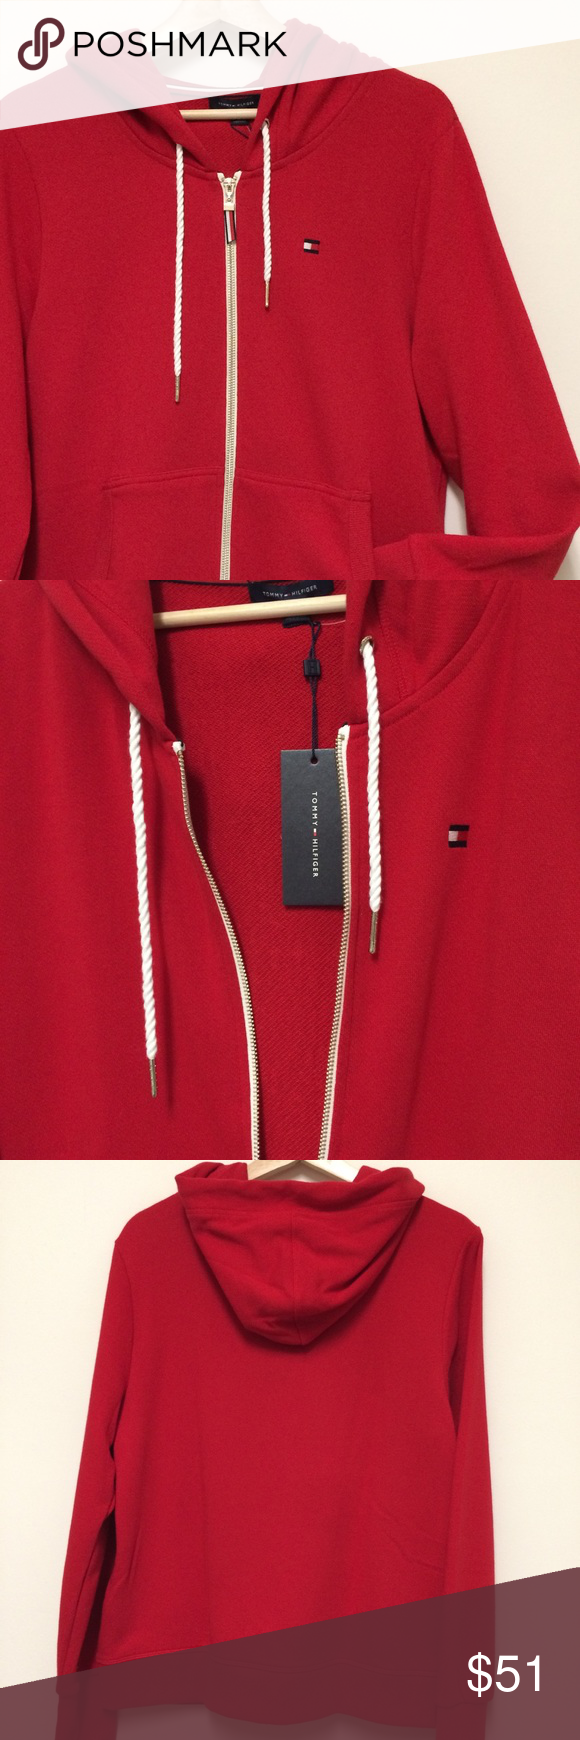 Tommy Hilfiger NWT red zipup hoodie large BRAND NEW! Red